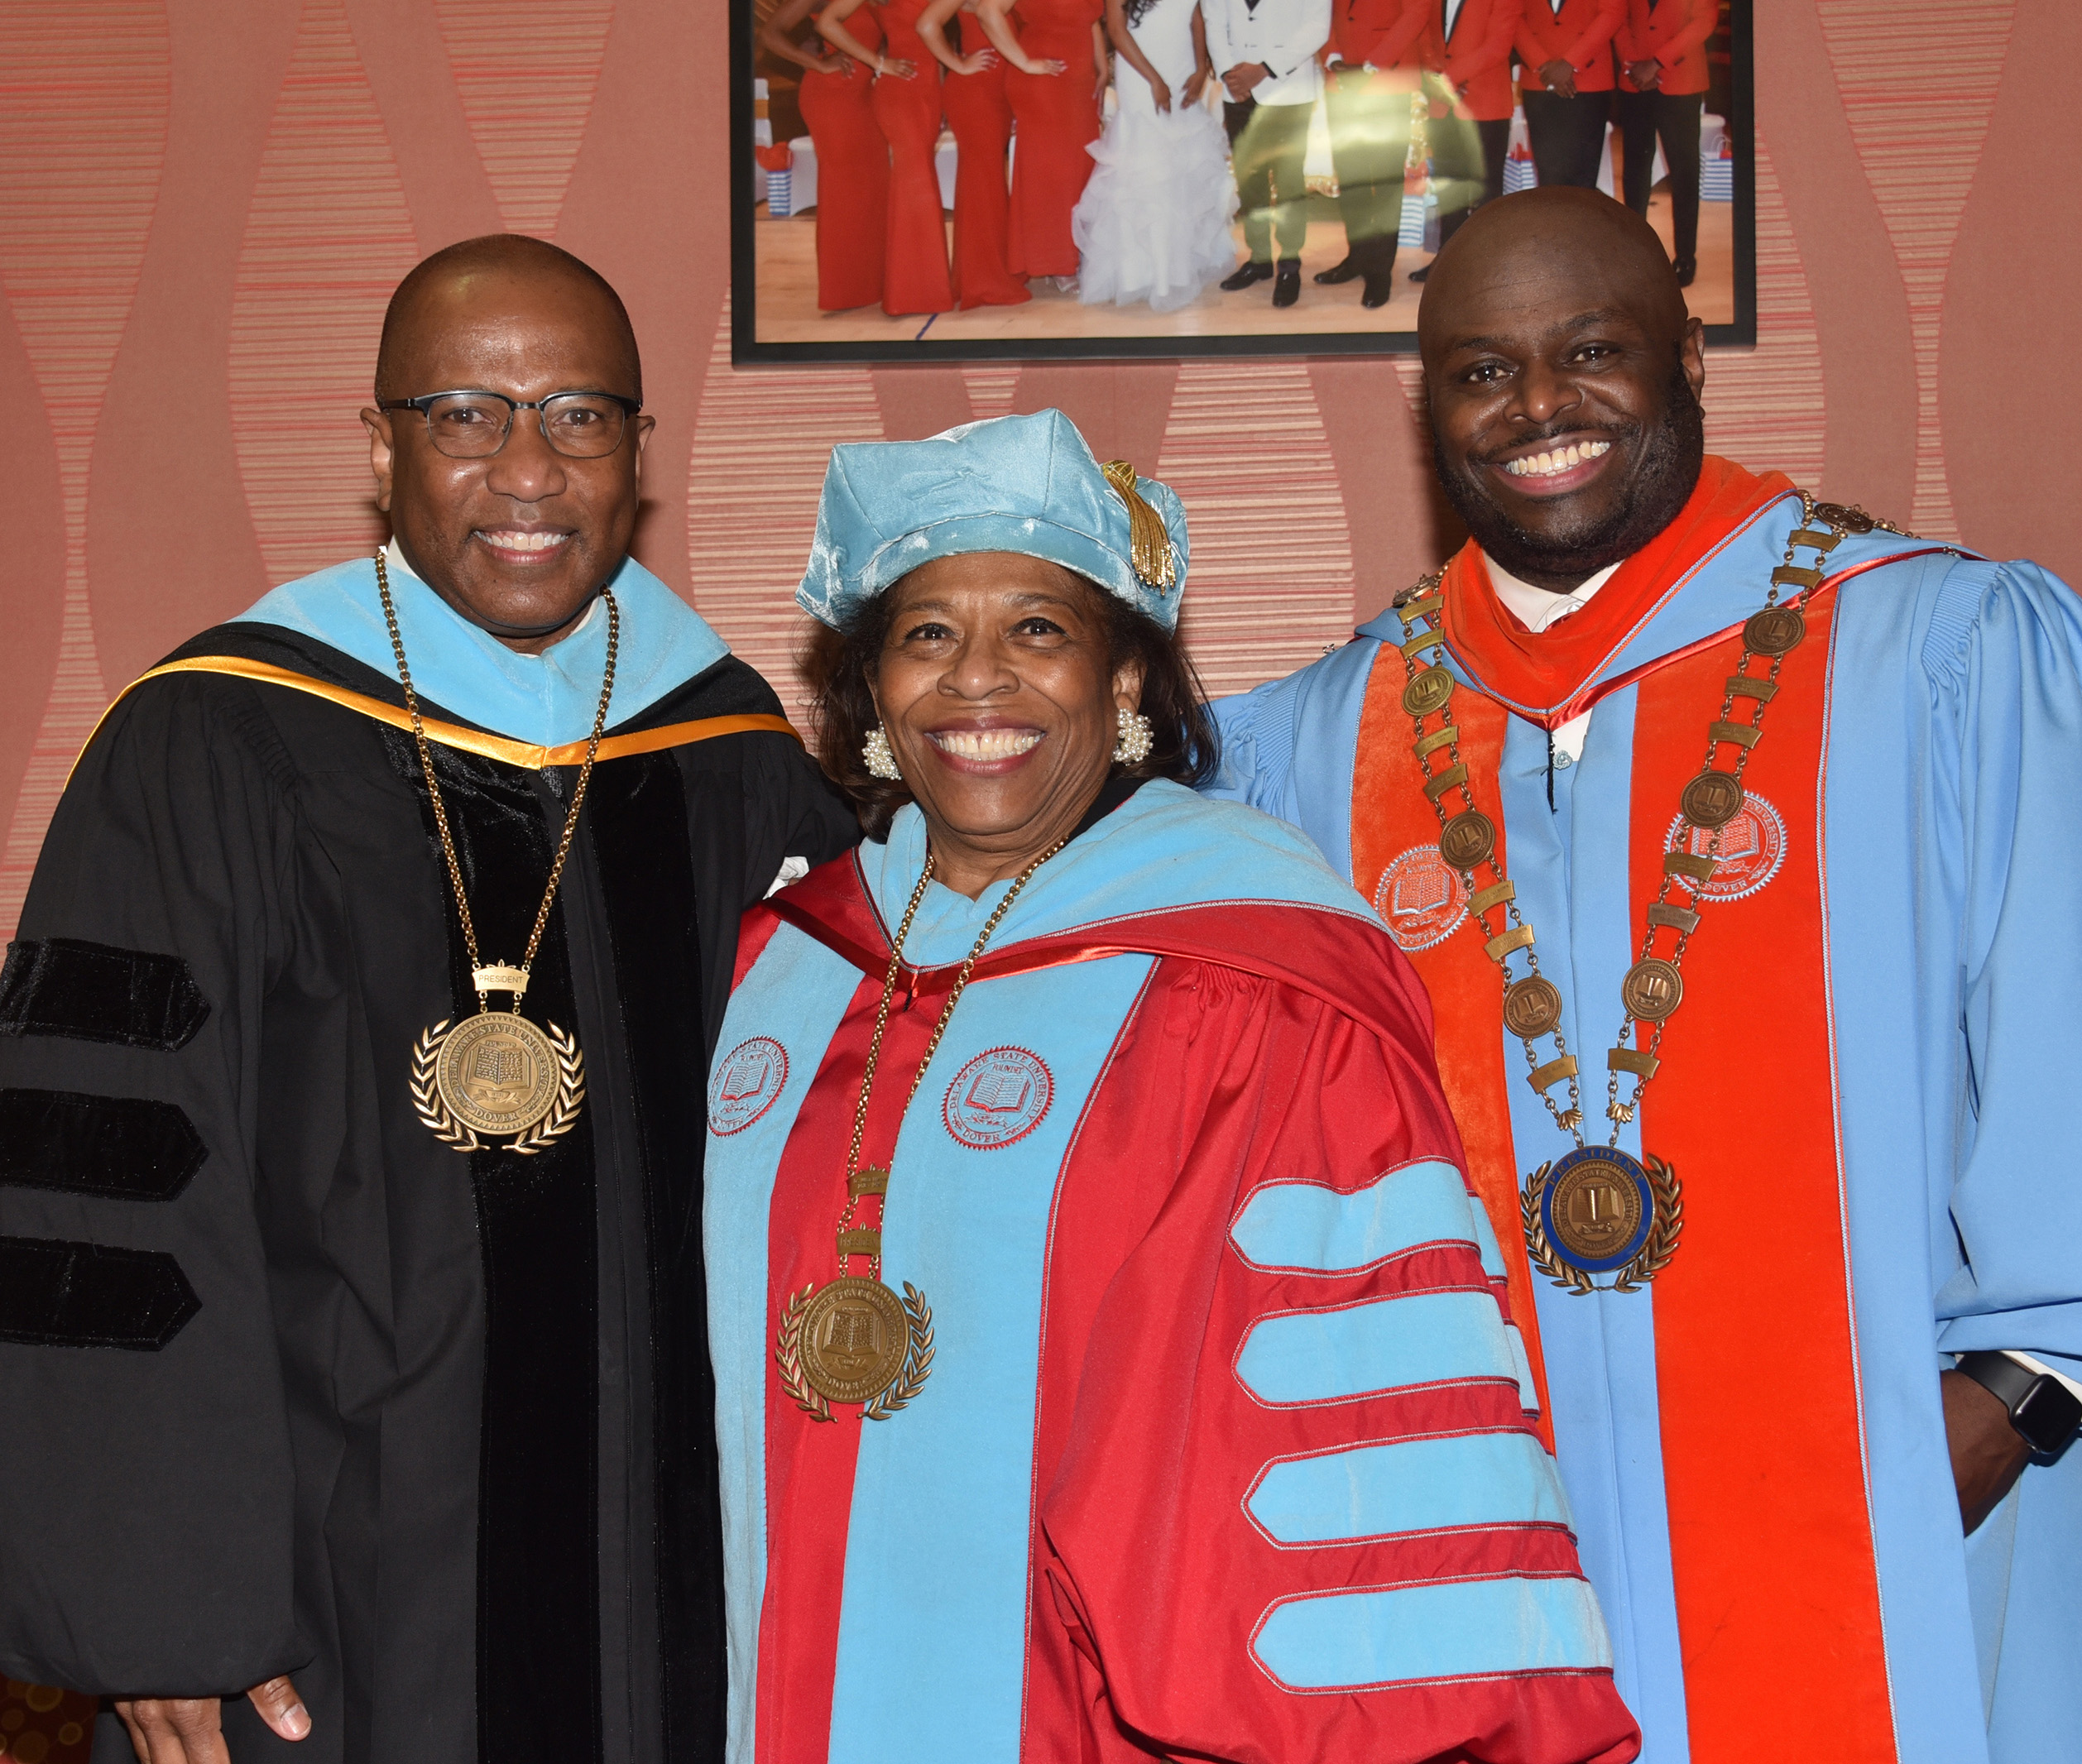 Three DSU president -- Dr. Harry L. Williams, Dr. Wilma Mishoe and Dr. Tony Allen were reunited during the May 8 Commencements.